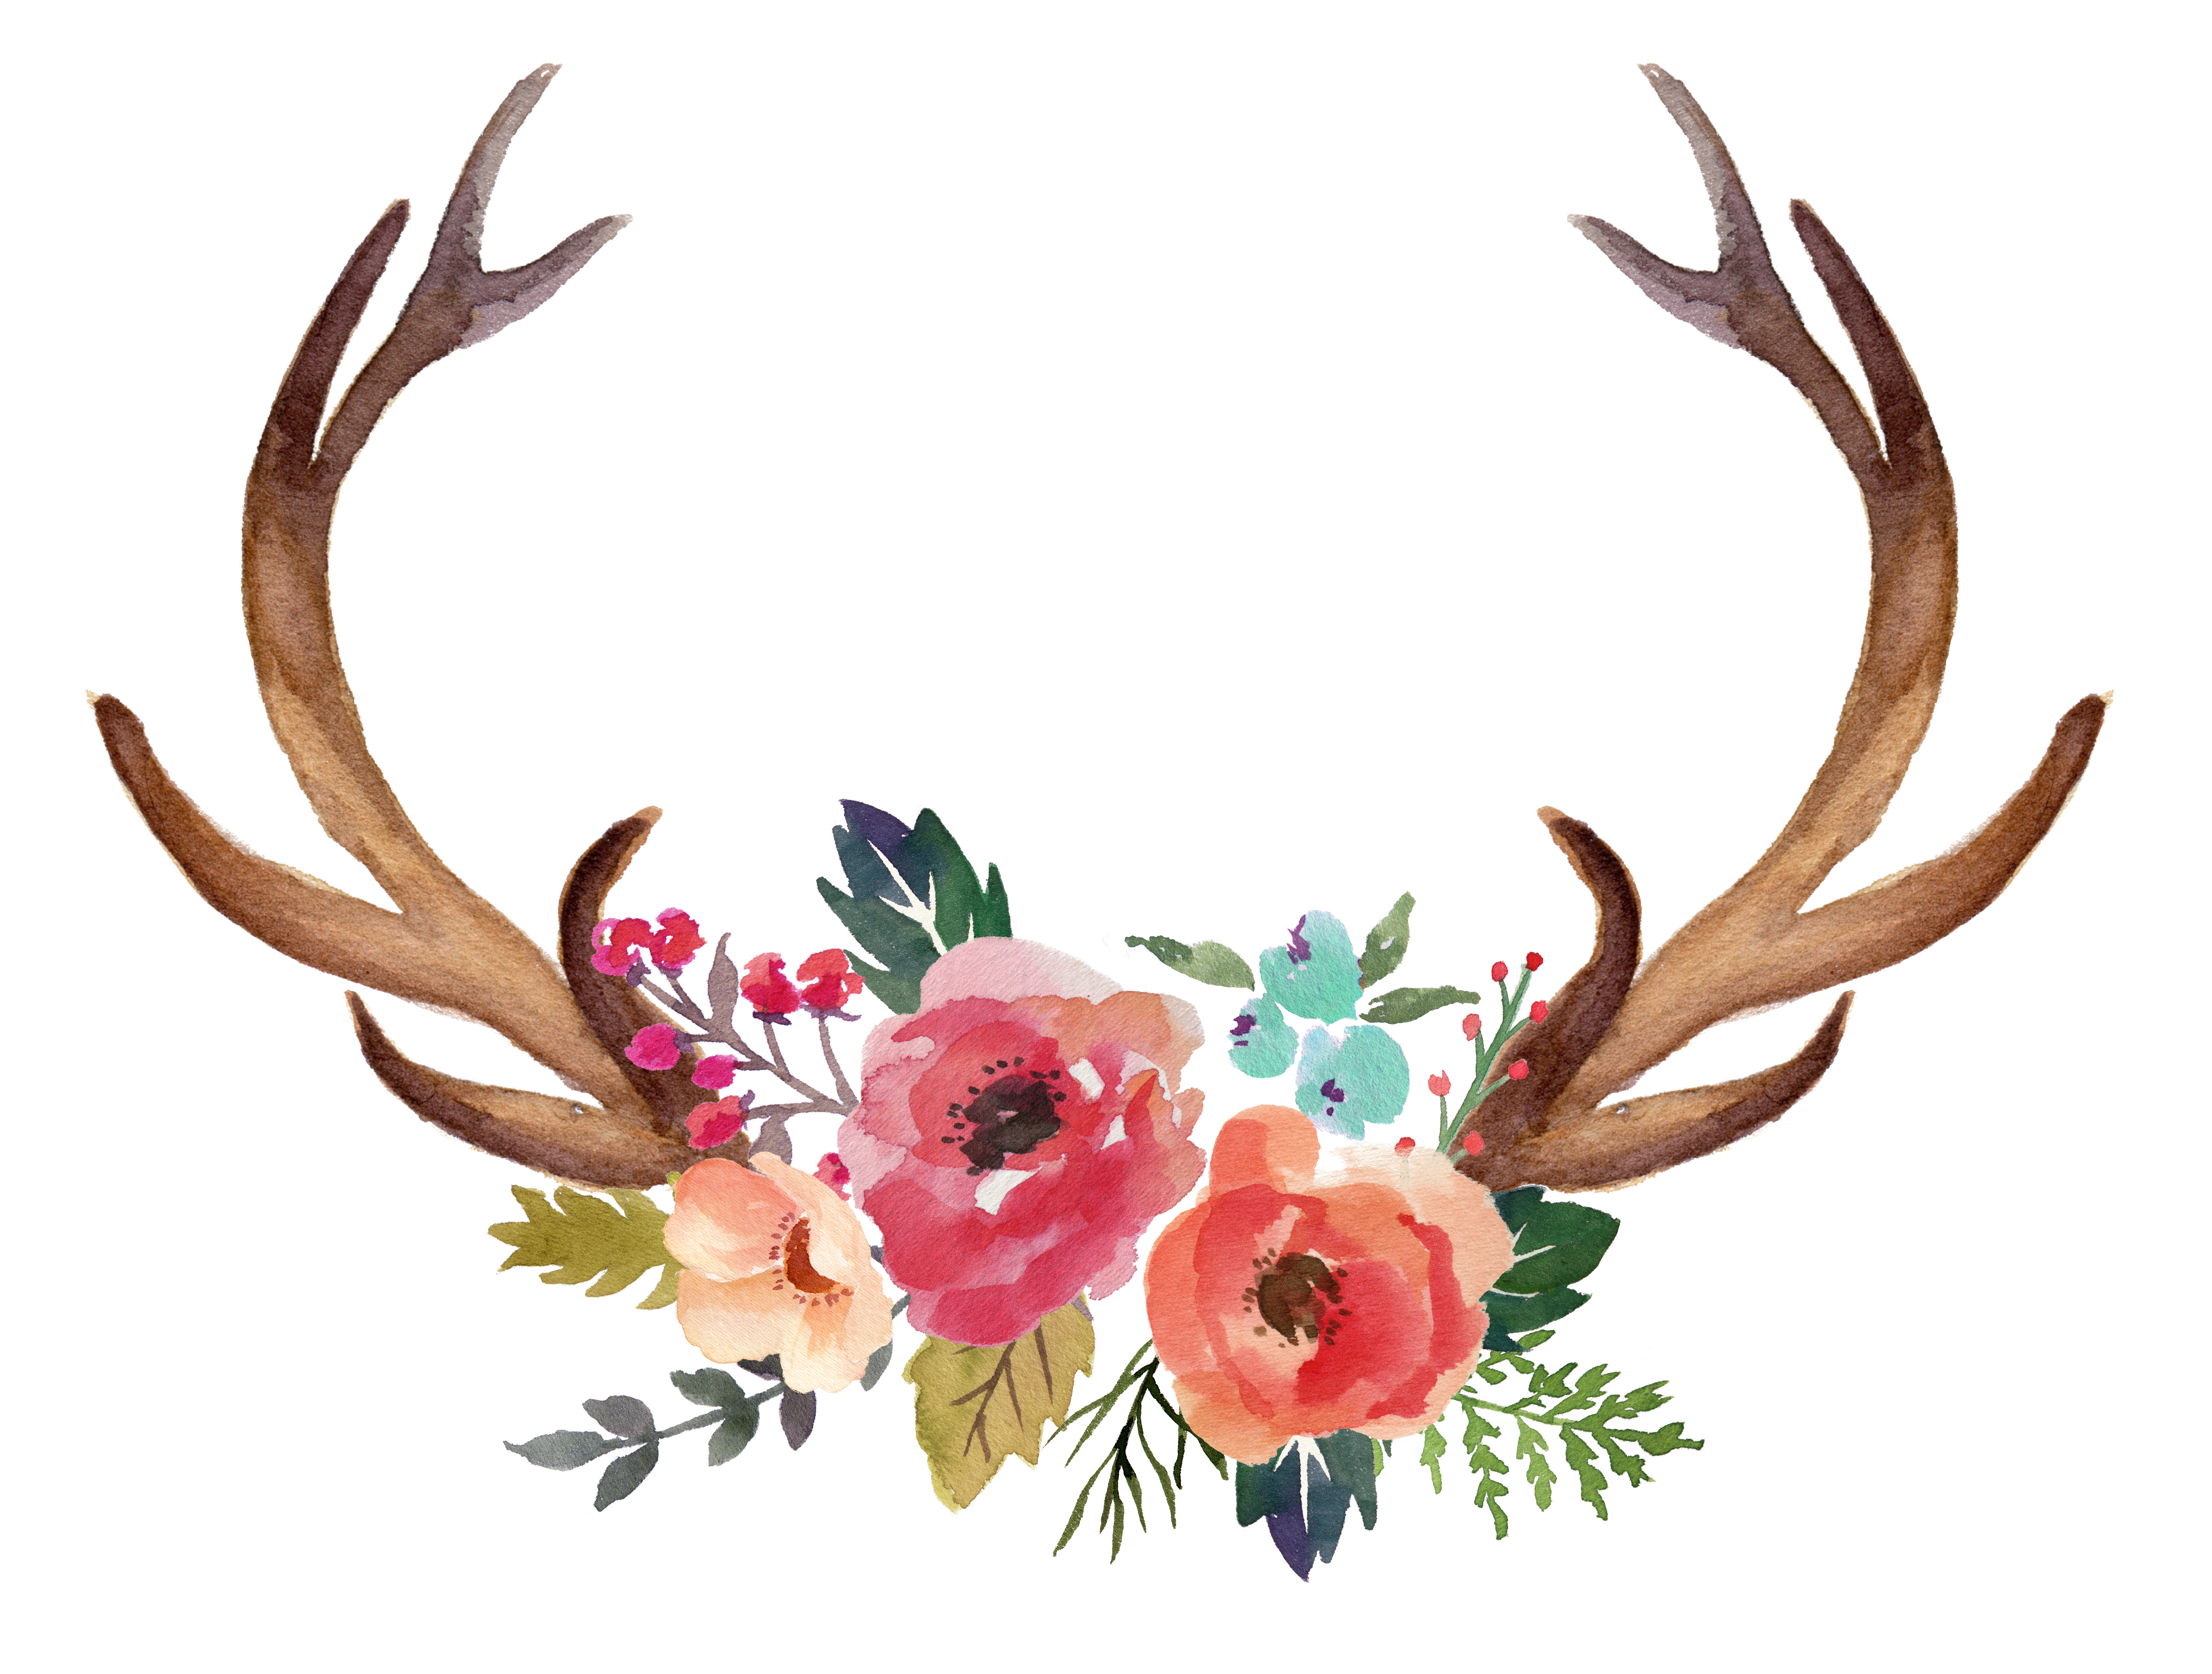 Antlers and flowers png. Deer antler clipart at